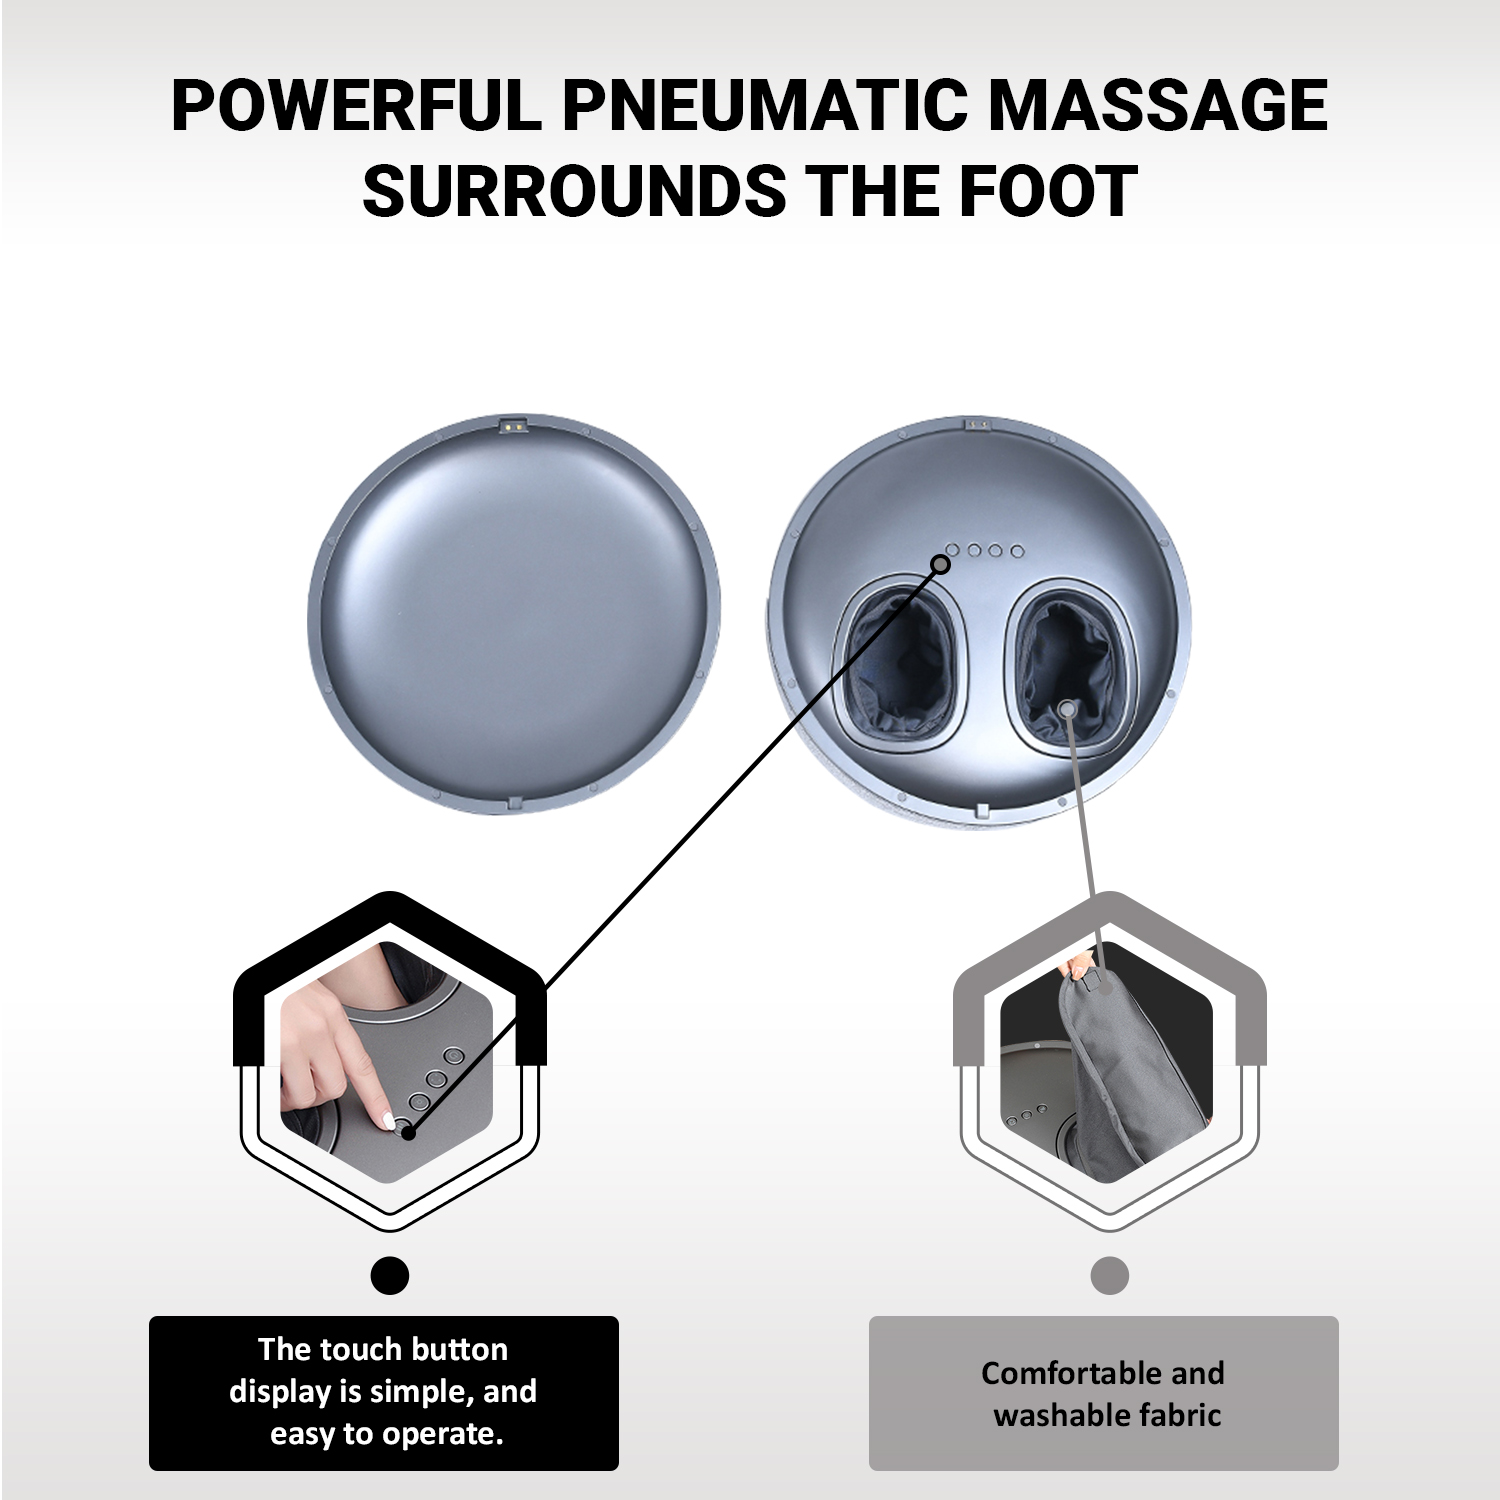 Ottoman Foot Massager by Ottossage, Massaging Ottoman with Removable Lid provides Air Compression, Shiatsu kneading, intense vibration and heat therapy. Extra Powerful with upgraded li-ion battery.